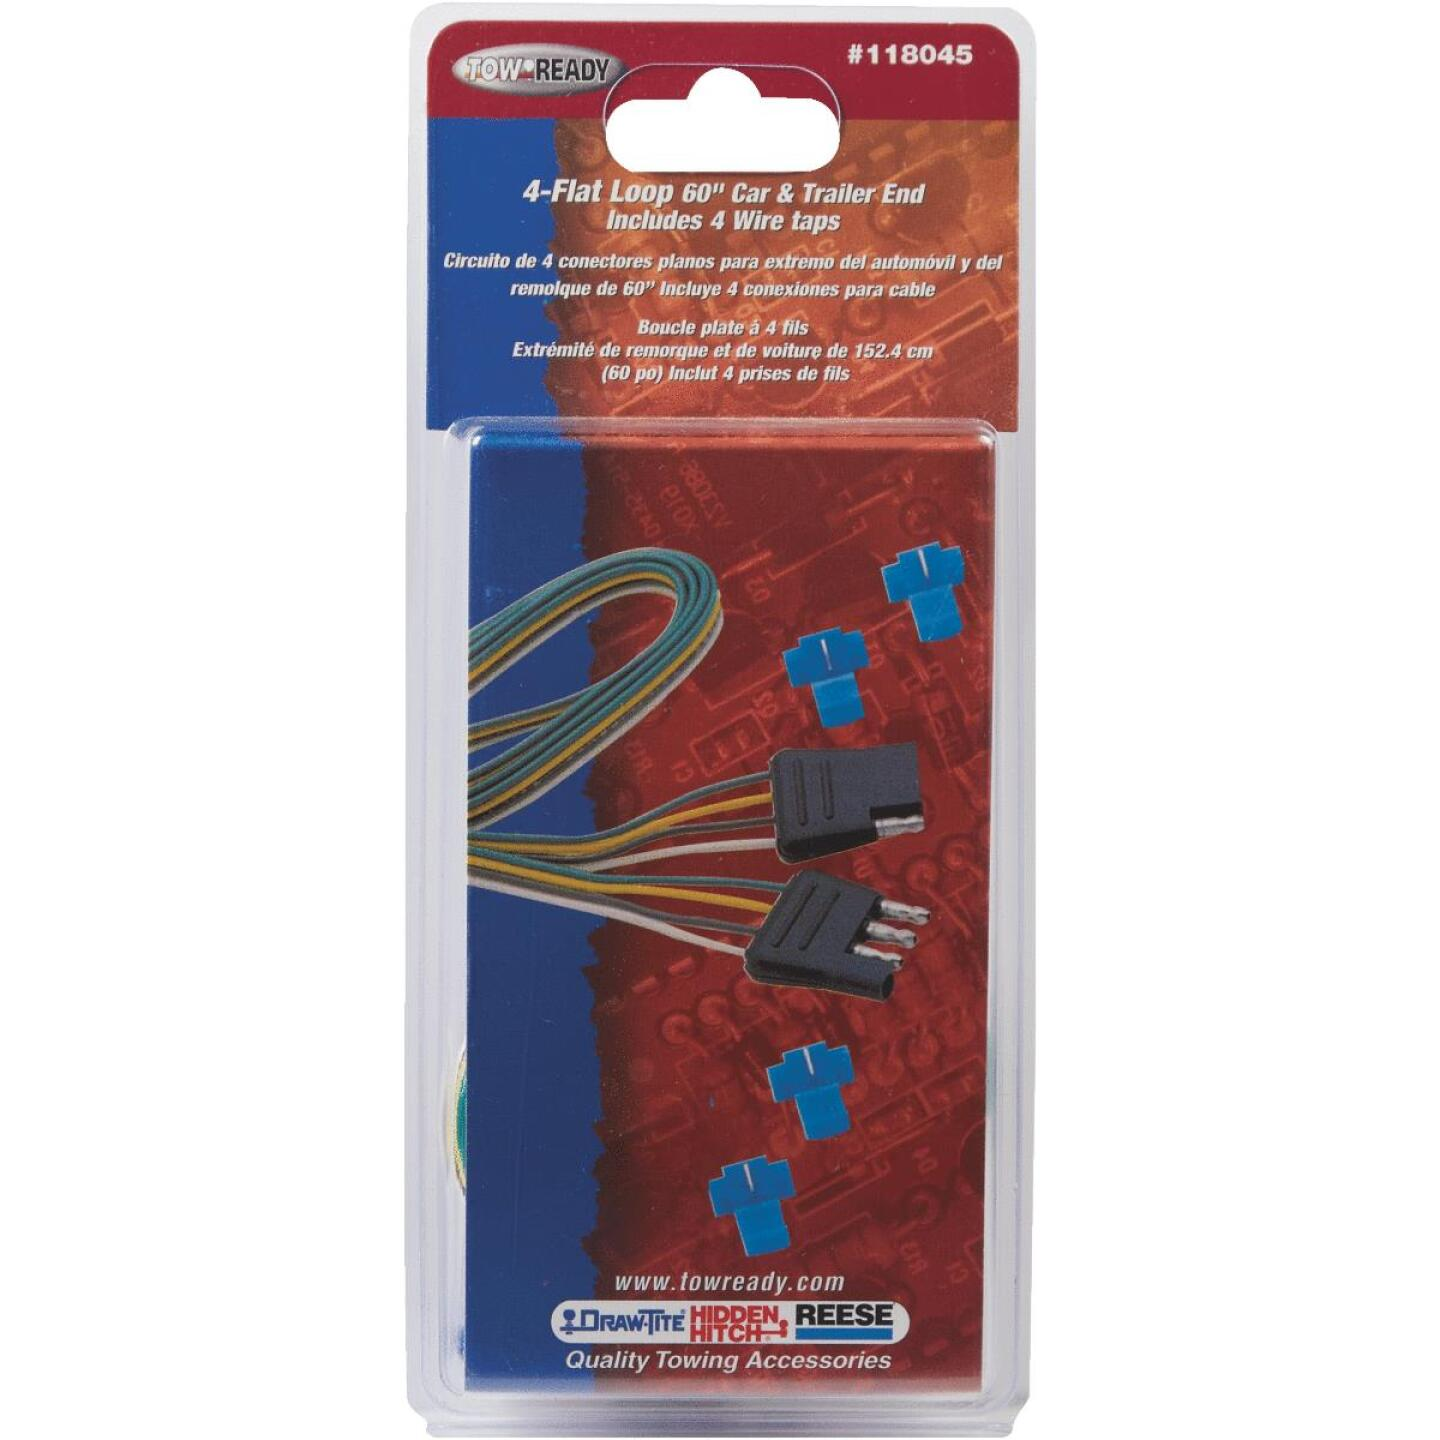 Reese Towpower 4-Flat Loop 48 In. Vehicle/12 In. Trailer Connector Set with Splice Connectors Image 2